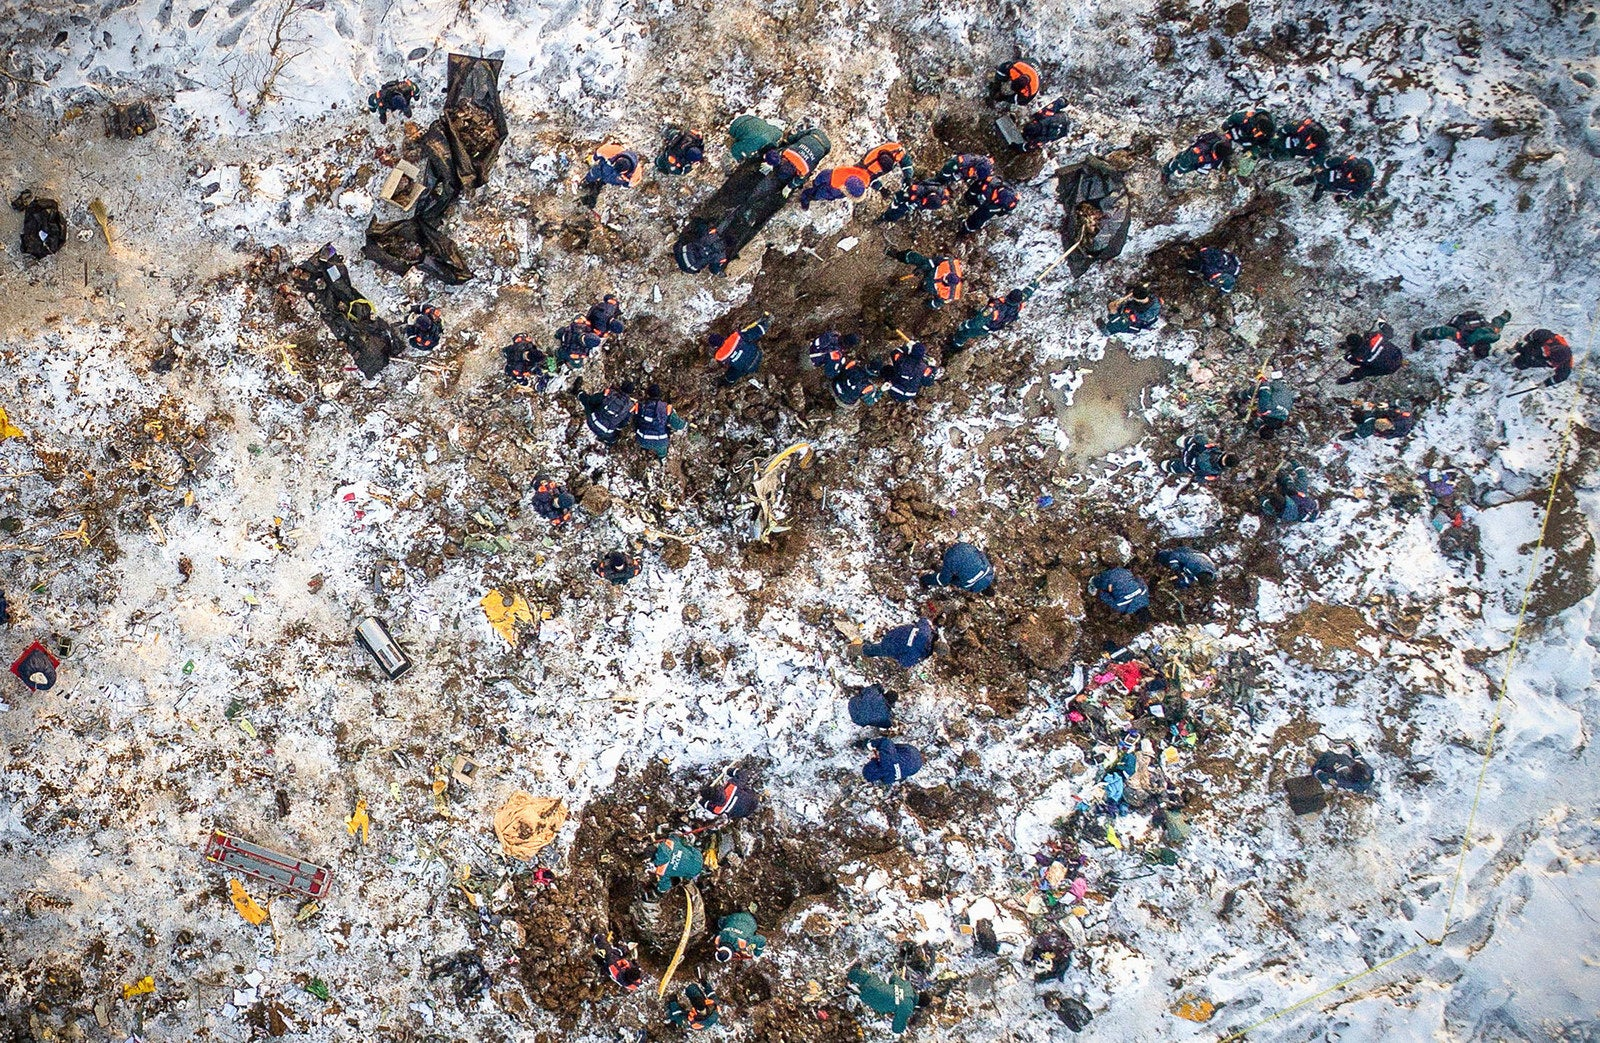 An aerial picture, taken in the Ramensky district on the outskirts of Moscow on Feb. 12, shows emergency rescuers working at the site where a plane crashed the day before. Rescuers searched through deep snow for body parts and debris after a Russian passenger plane crashed near Moscow minutes after takeoff, killing all 71 people on board, in the country's deadliest air crash since 2016.